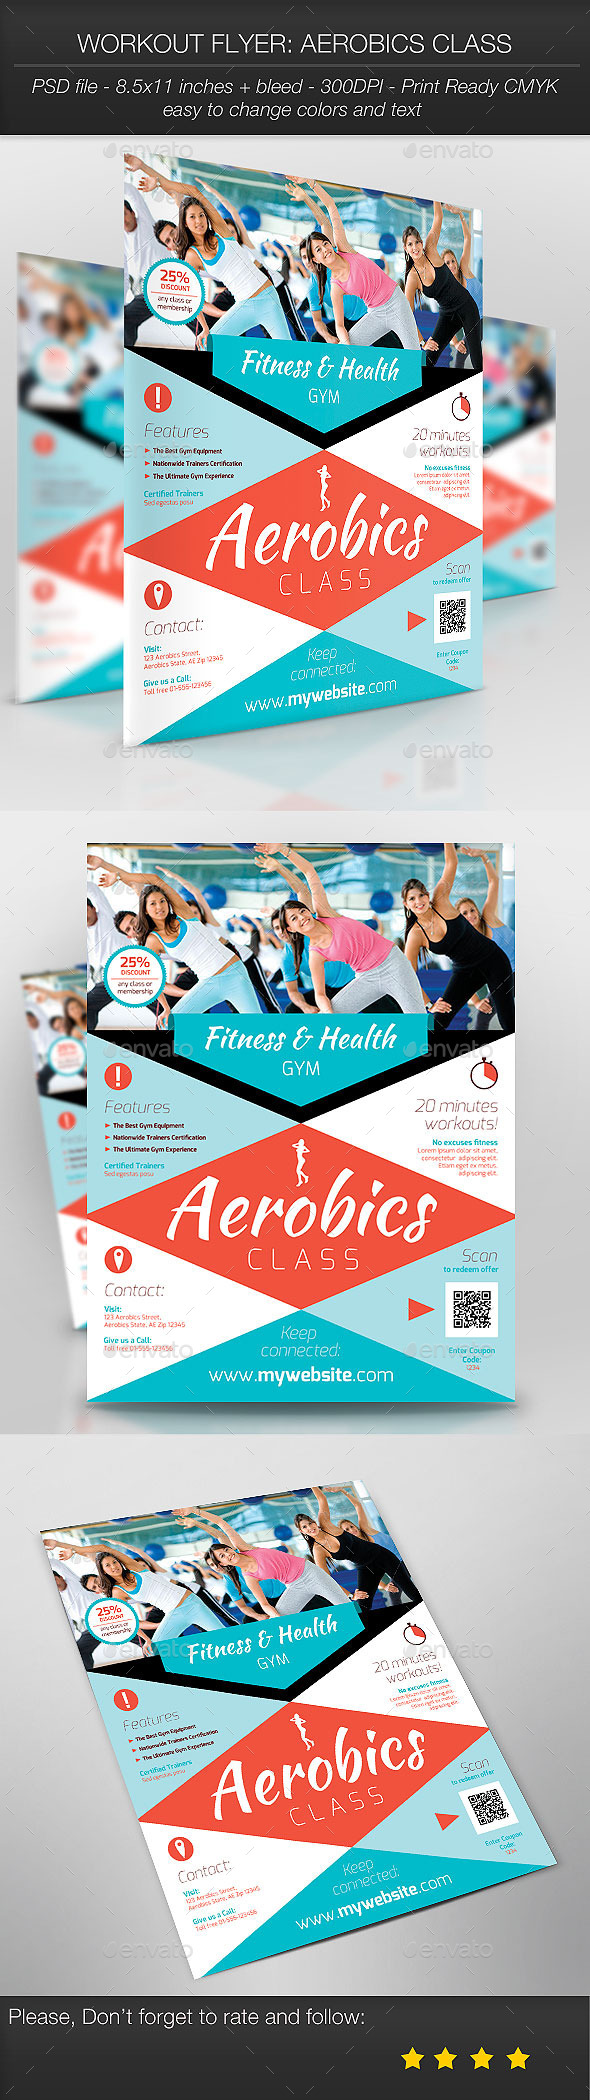 GraphicRiver Workout Flyer Aerobics Class 9409277